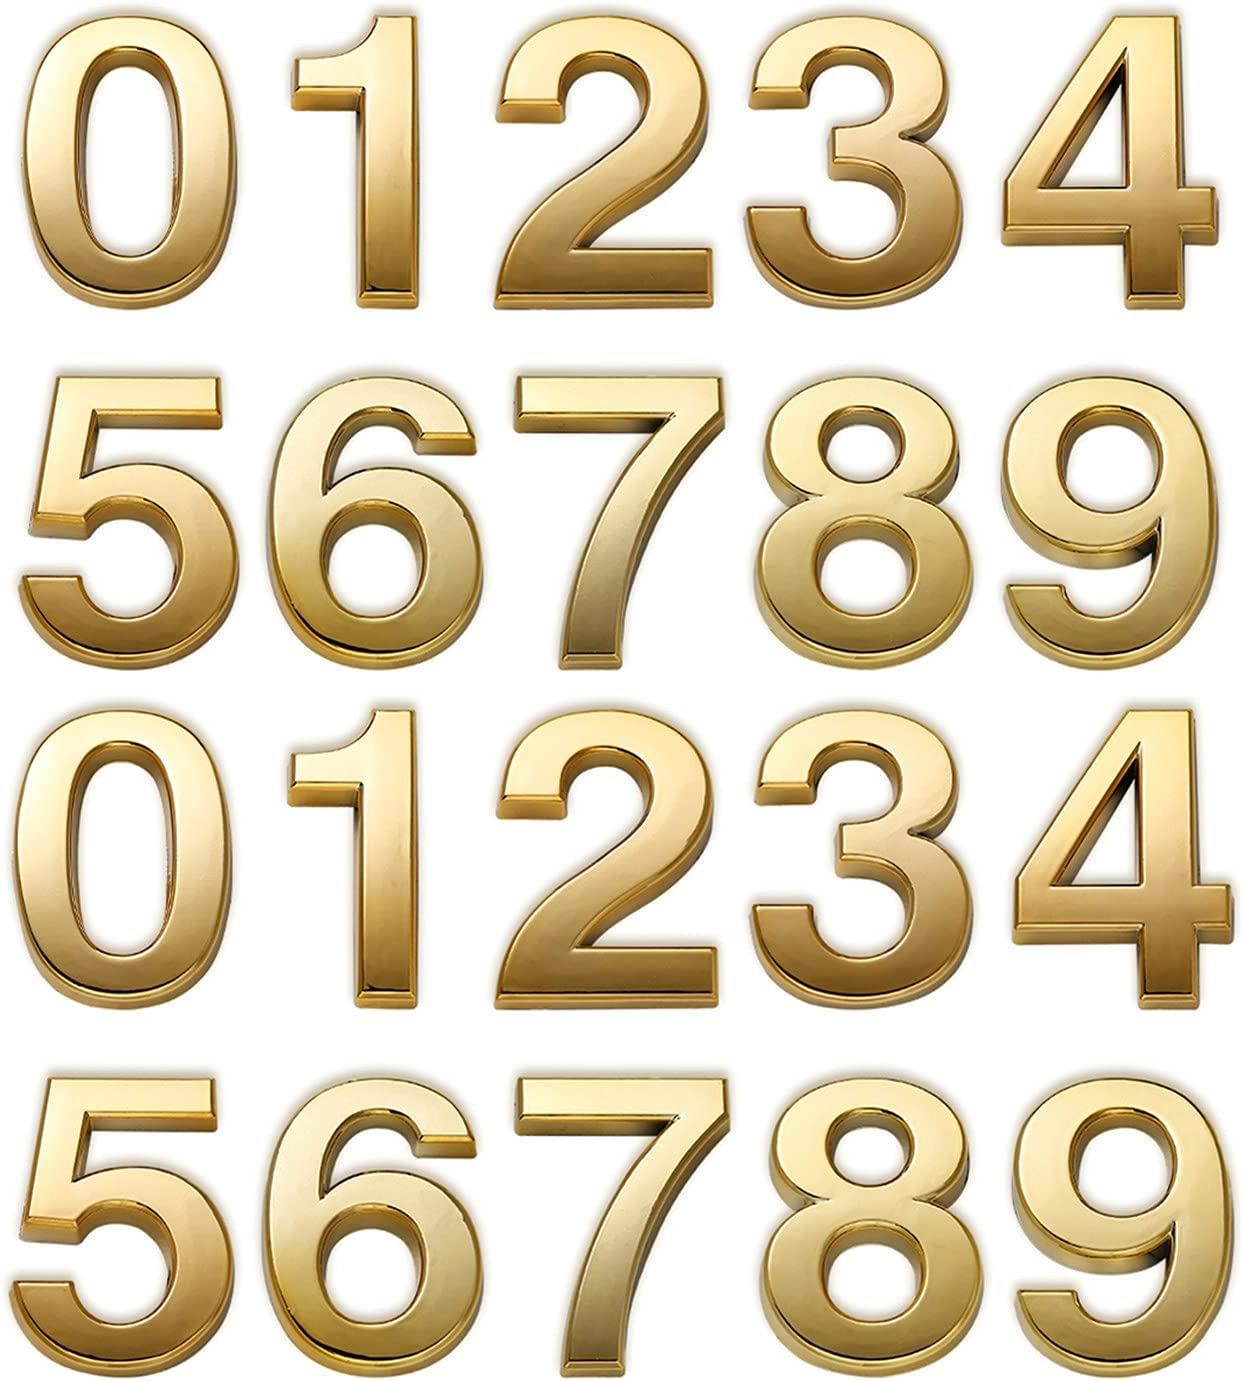 3 Inch Mailbox Numbers Gold for House Los Angeles Mall Door Ranking TOP9 address Hom